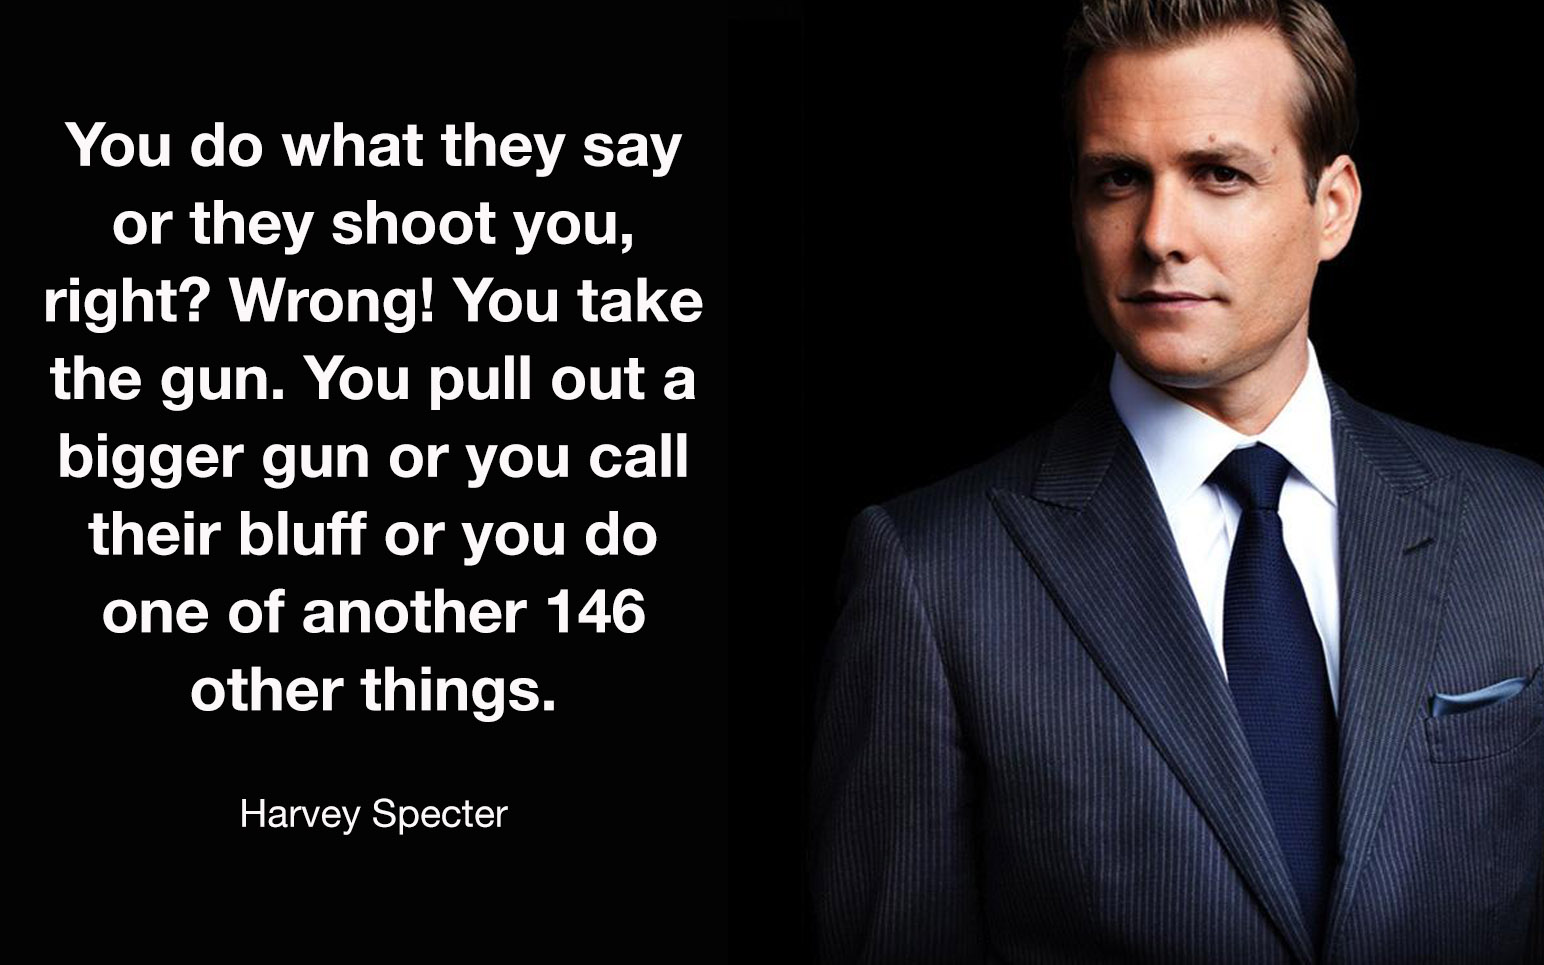 Godfather Hd Wallpaper 21 Harvey Specter Quotes To Help You Win At Life And